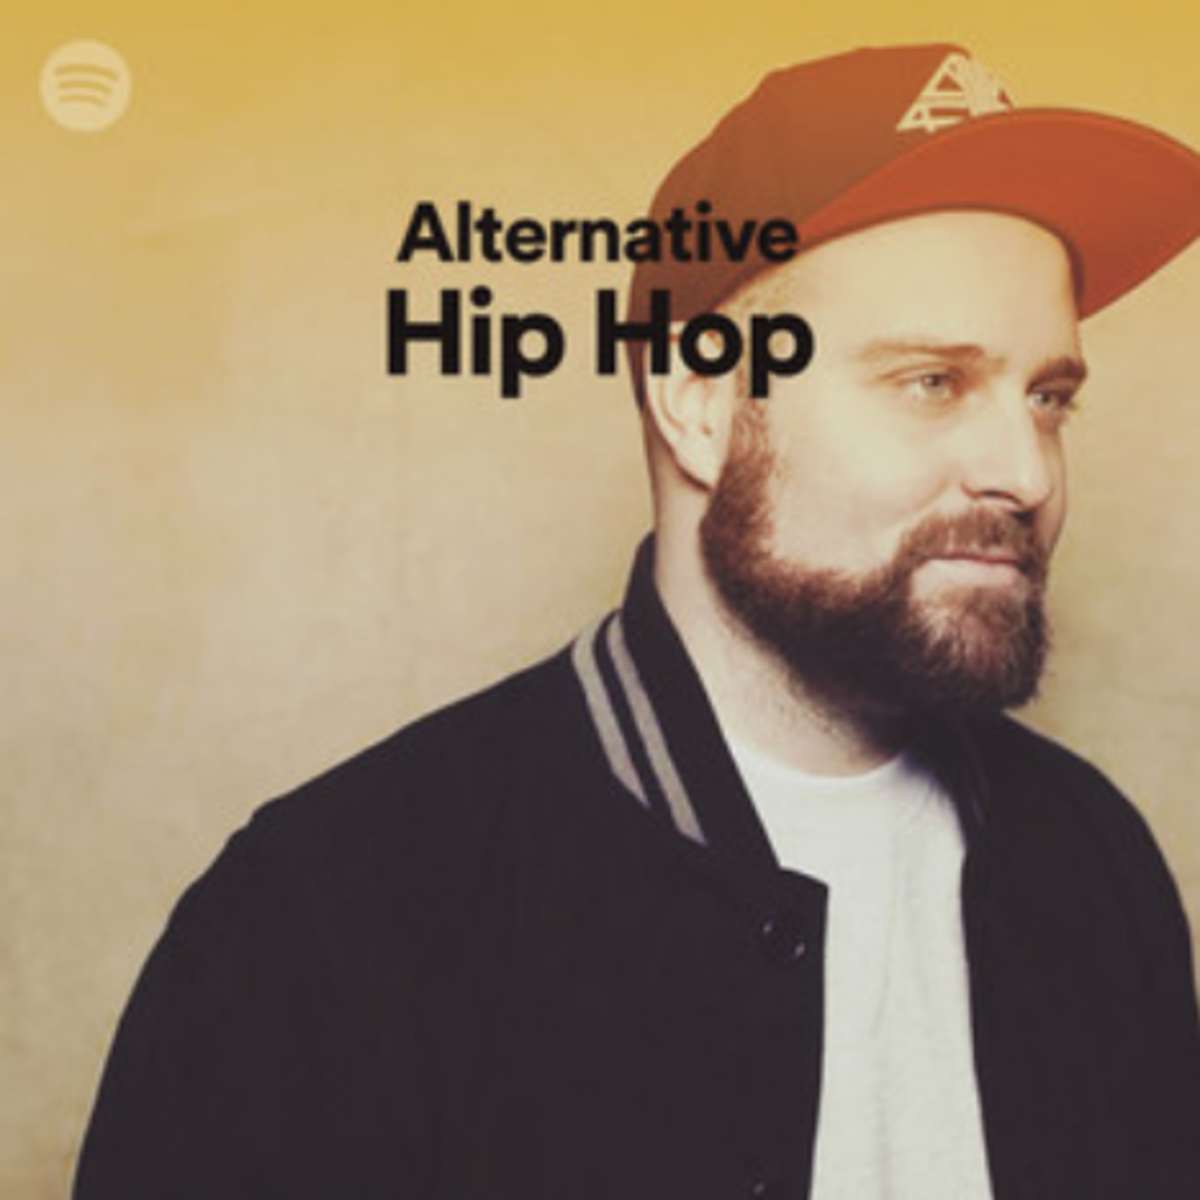 Articlehome the last skeptik spotify alternative hip hop playlist